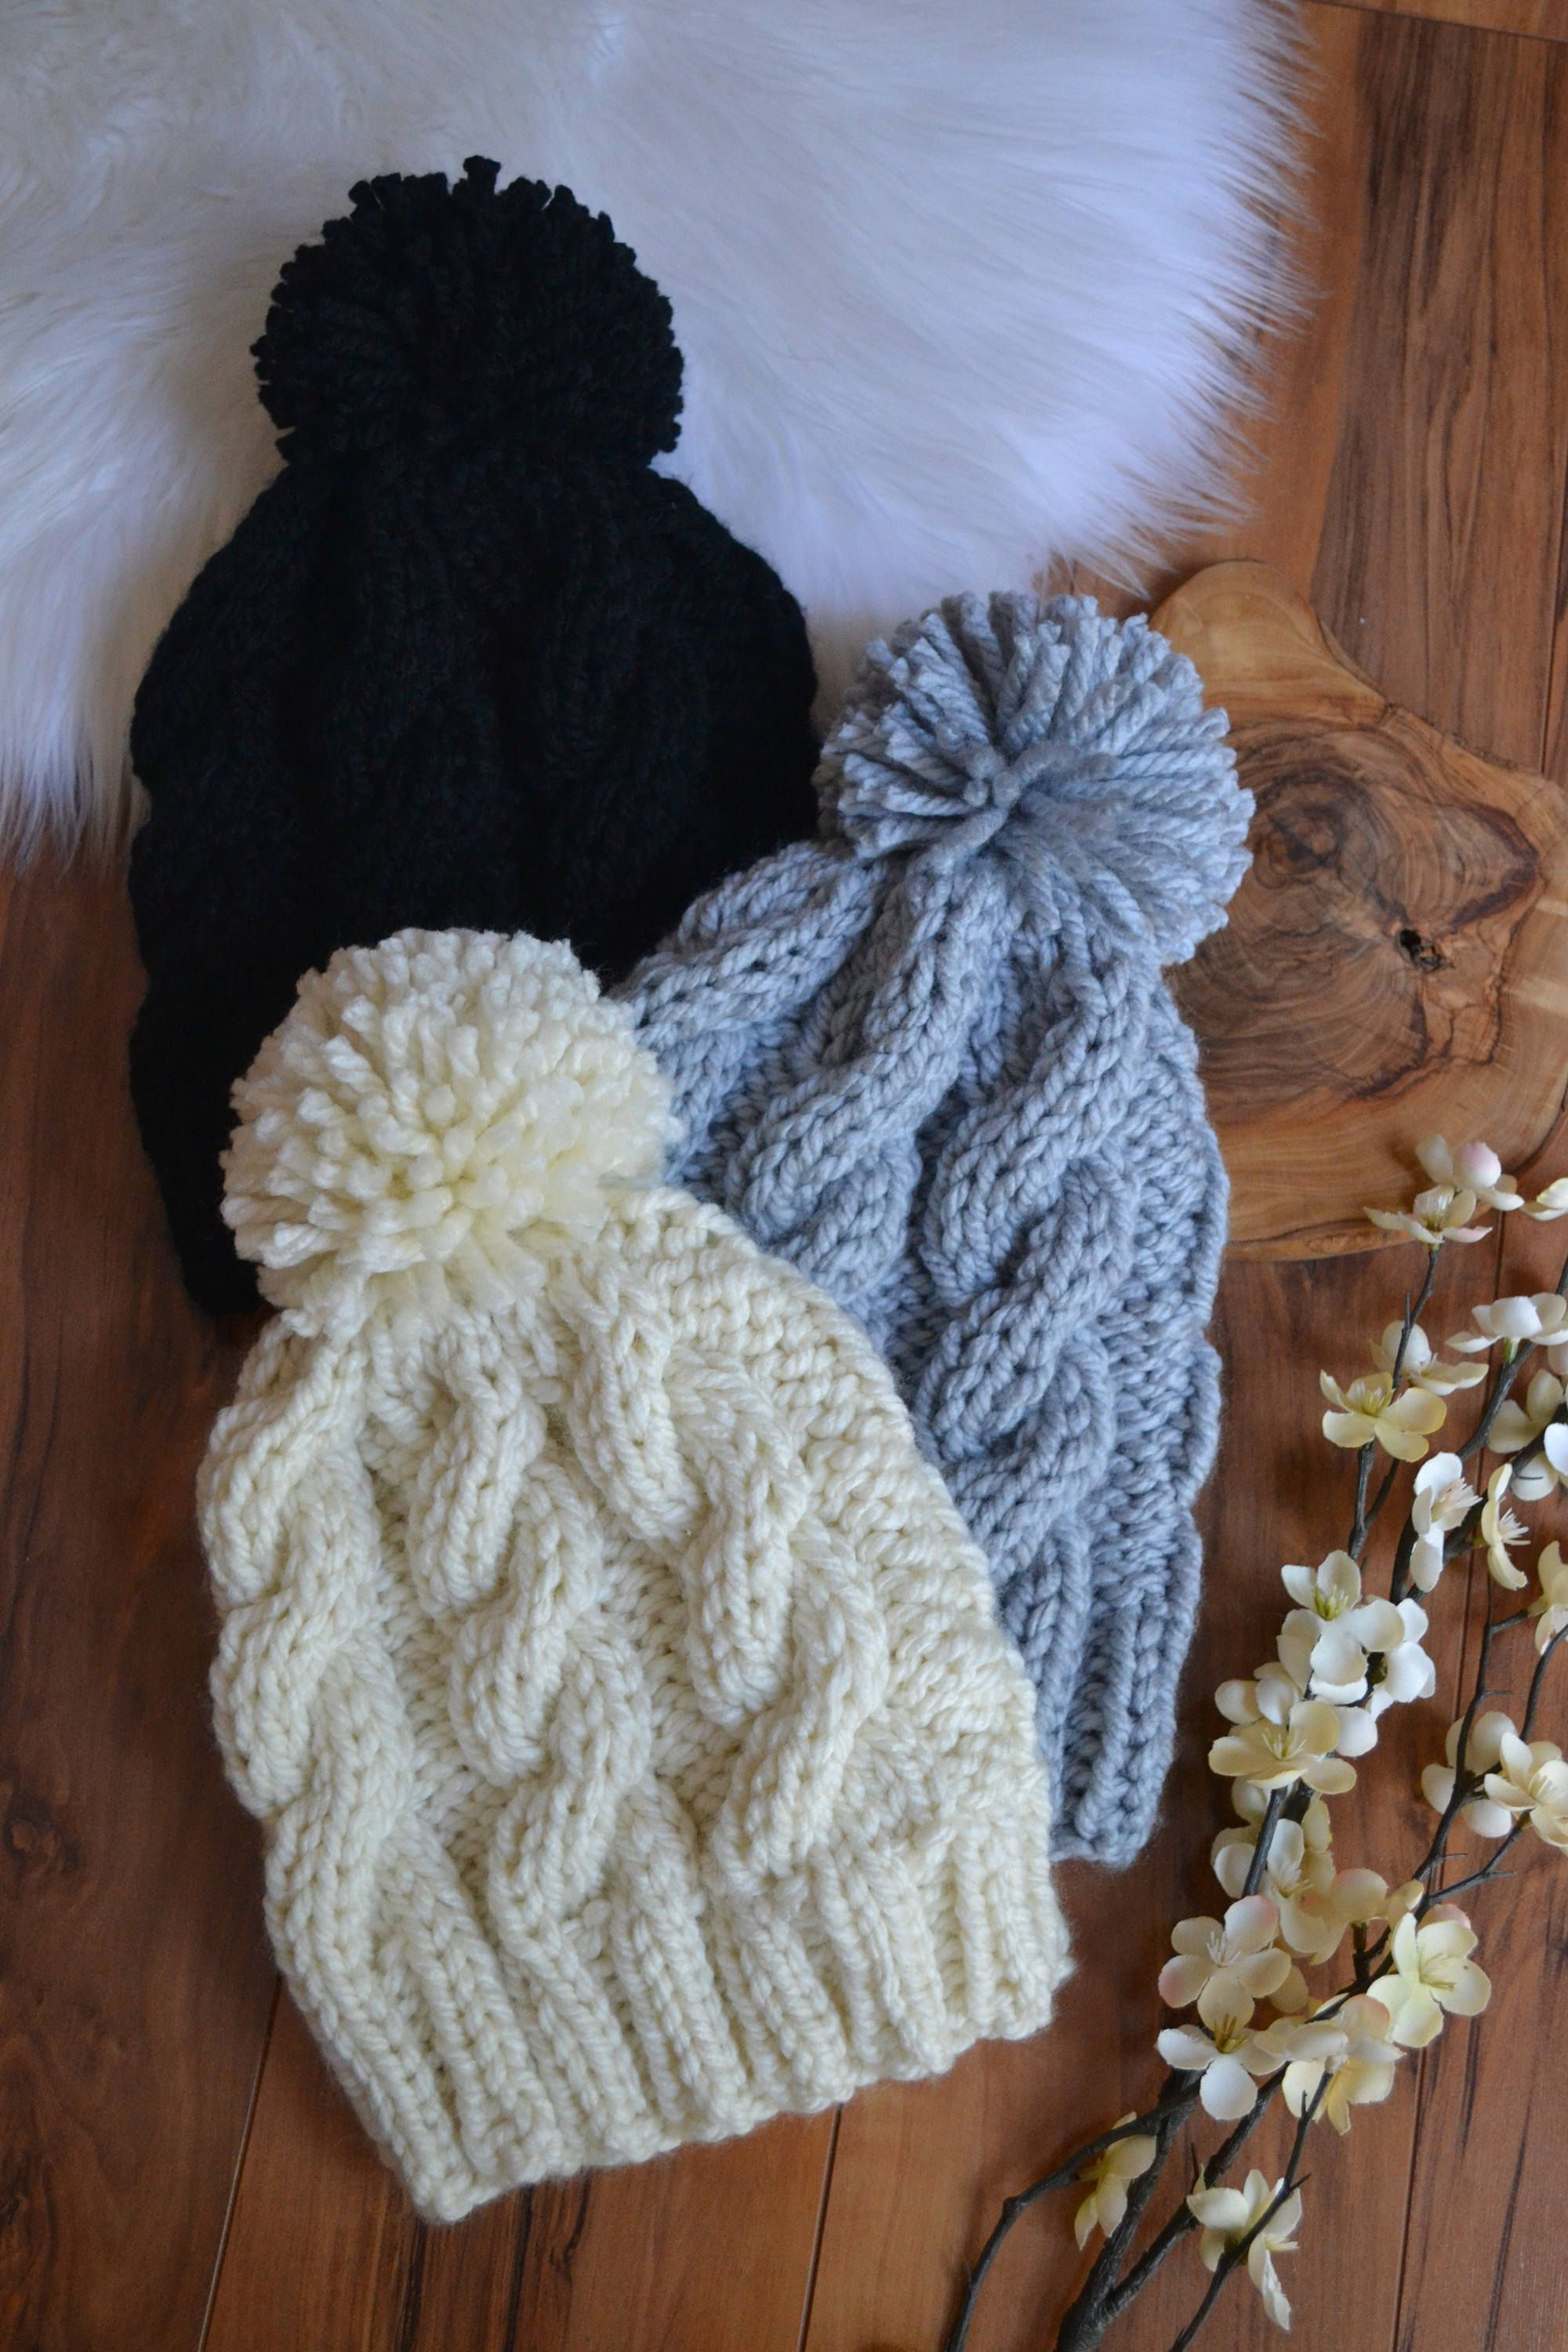 063a15ef9 DIY KNITTING PATTERN The Ultimate Cable Knit Women's Pom Pom Beanie ...